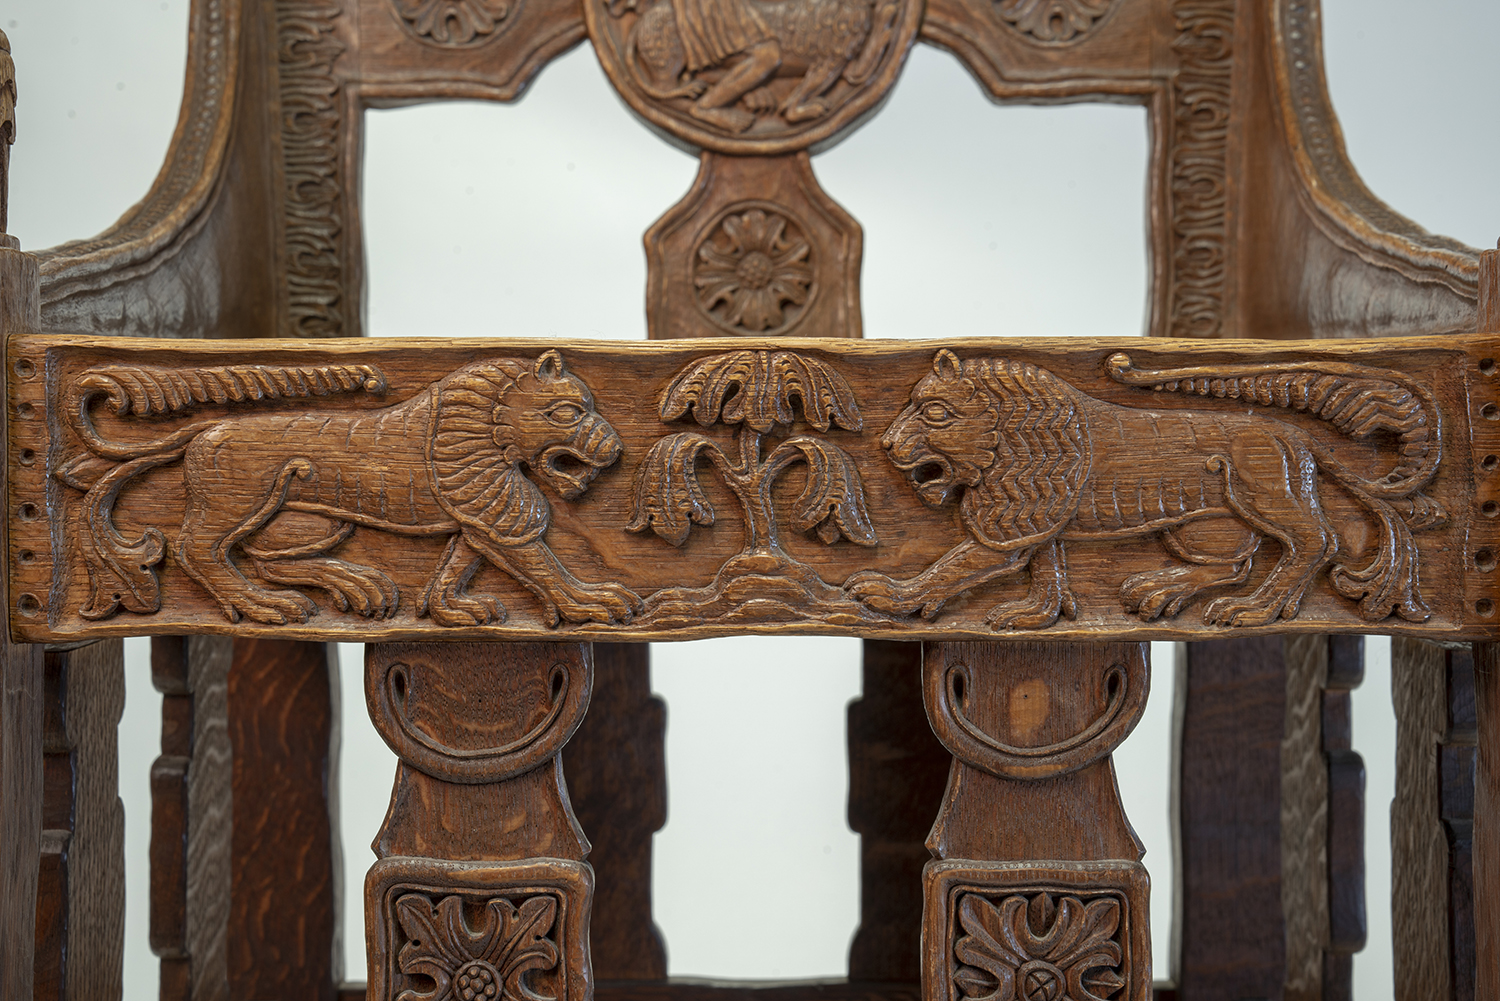 Figure 16: Bryn Athyn Cathedral Tyldal-style chair with two lions facing each other on the chair apron. This chair also features a depiction of Samson slaying a lion (Judges 14:5)on the chair back (front side).